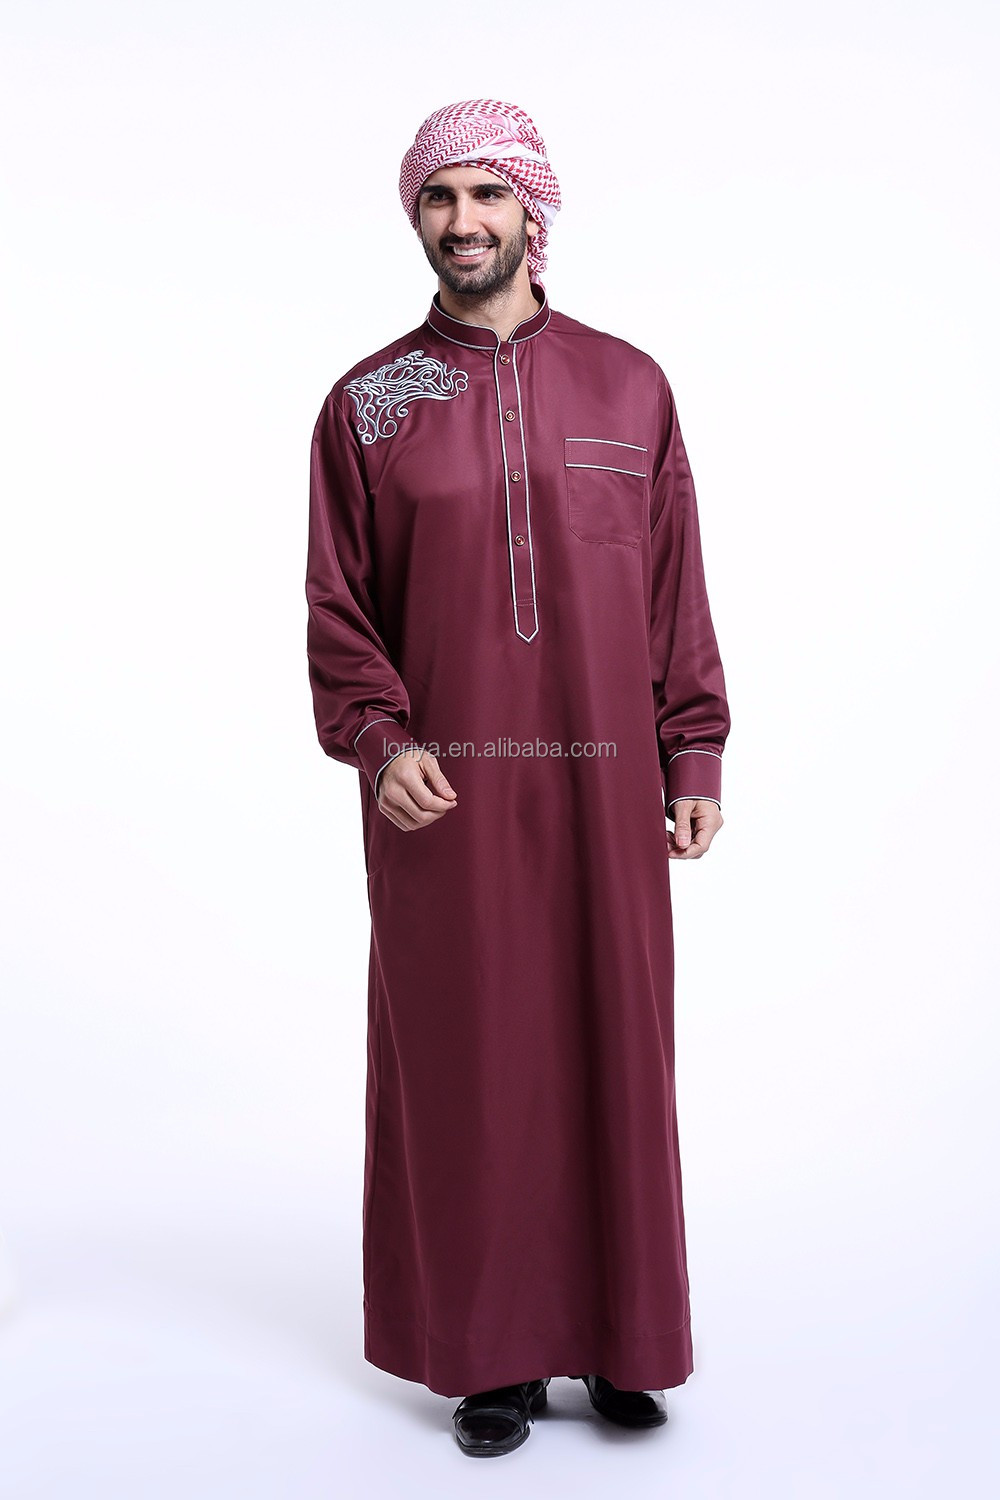 Fashionable best-selling muslim men thobe dubai abaya for islamic online sale men wear kaftan jubah men robe jubah abaya